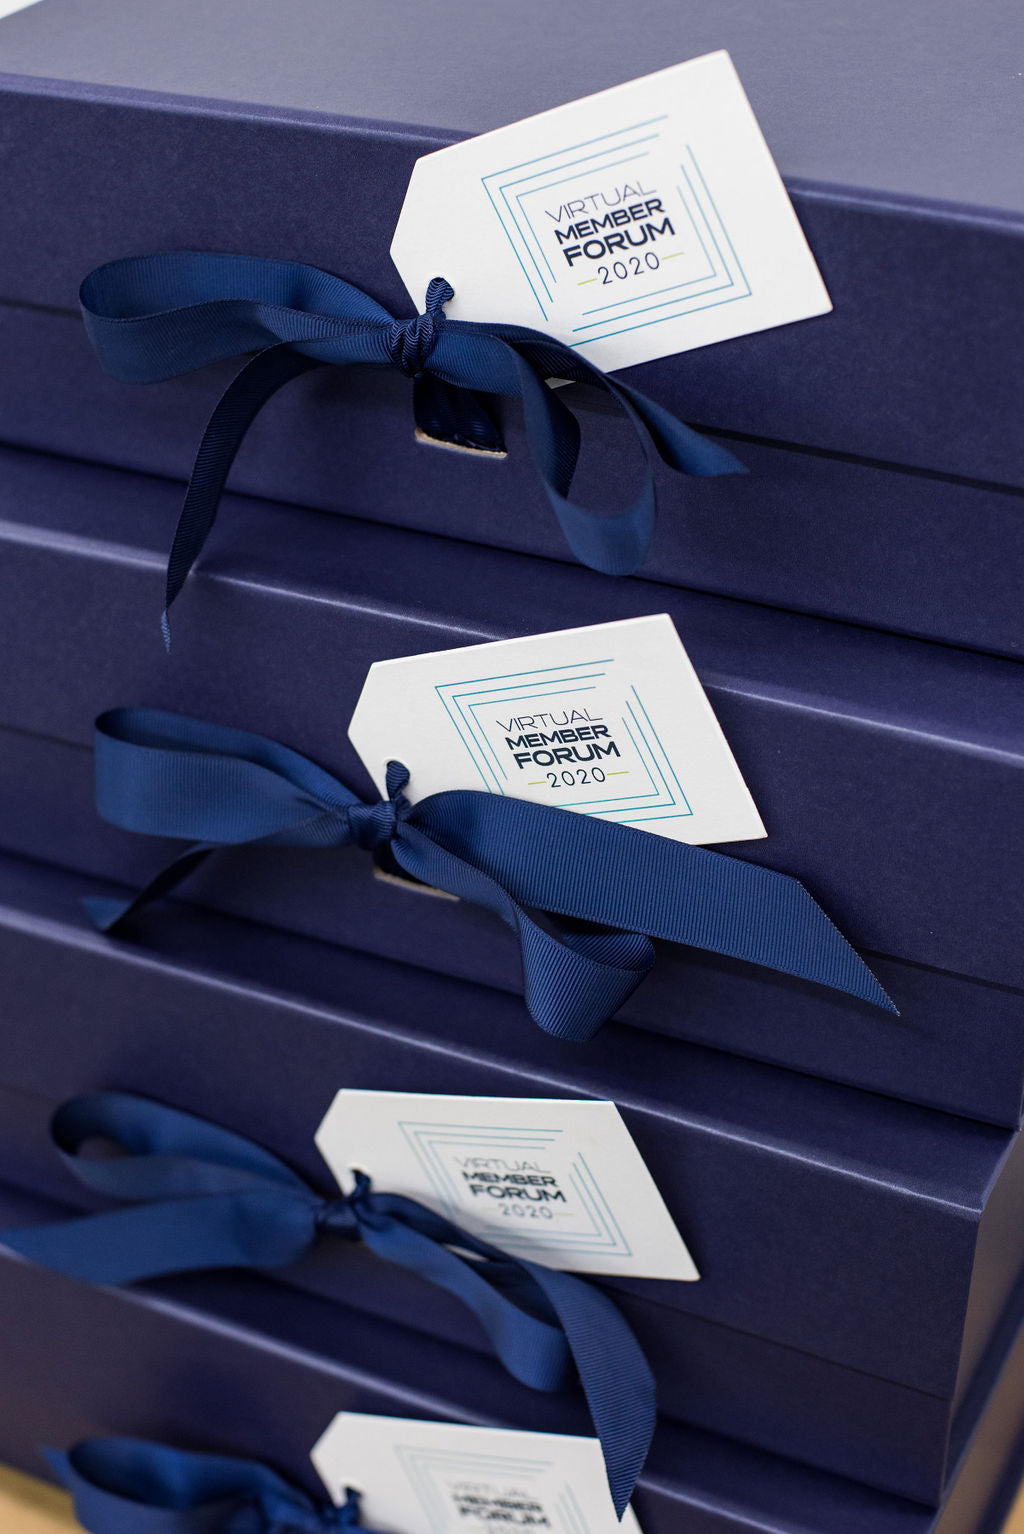 virtual event gift boxes